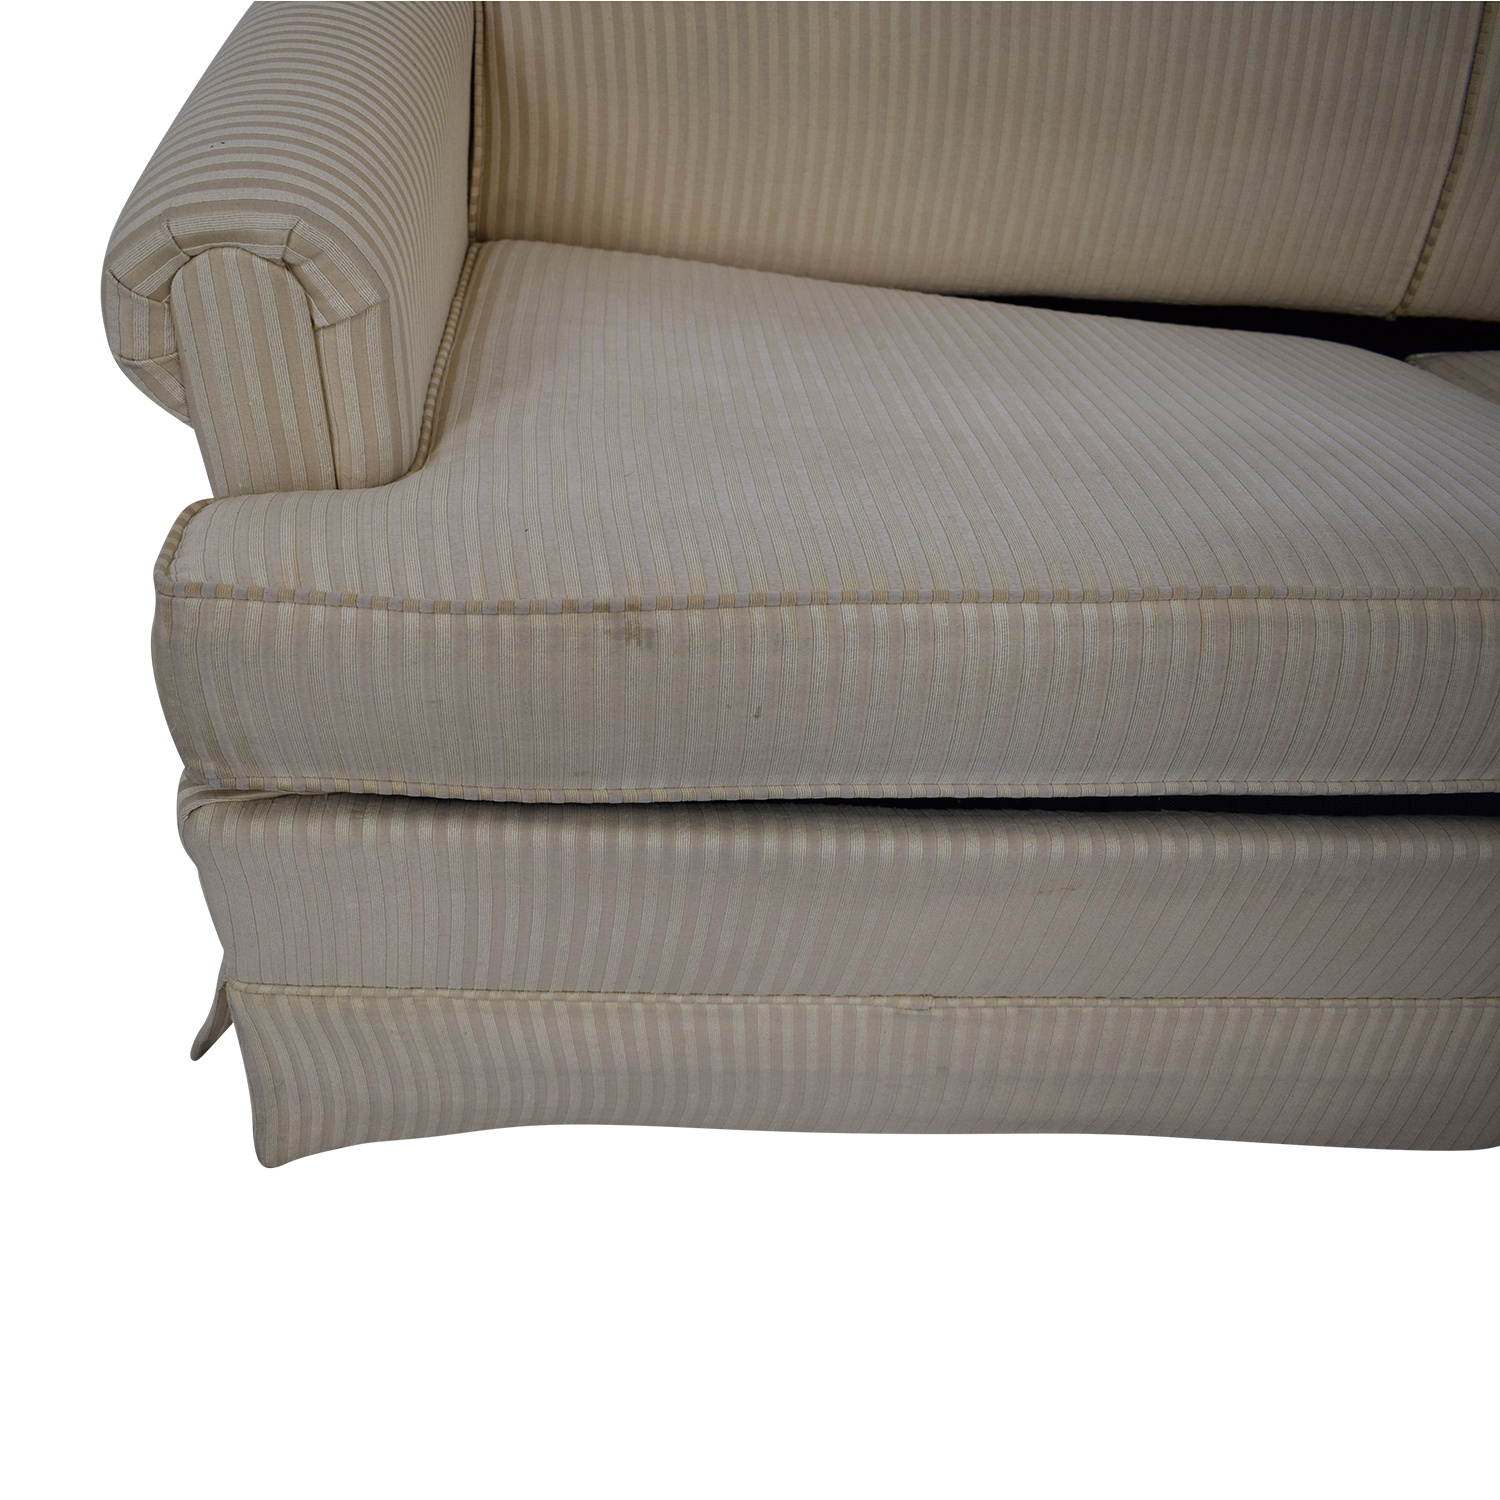 Stearns & Foster Stearns & Foster Two-Cushion Sleeper Sofa for sale